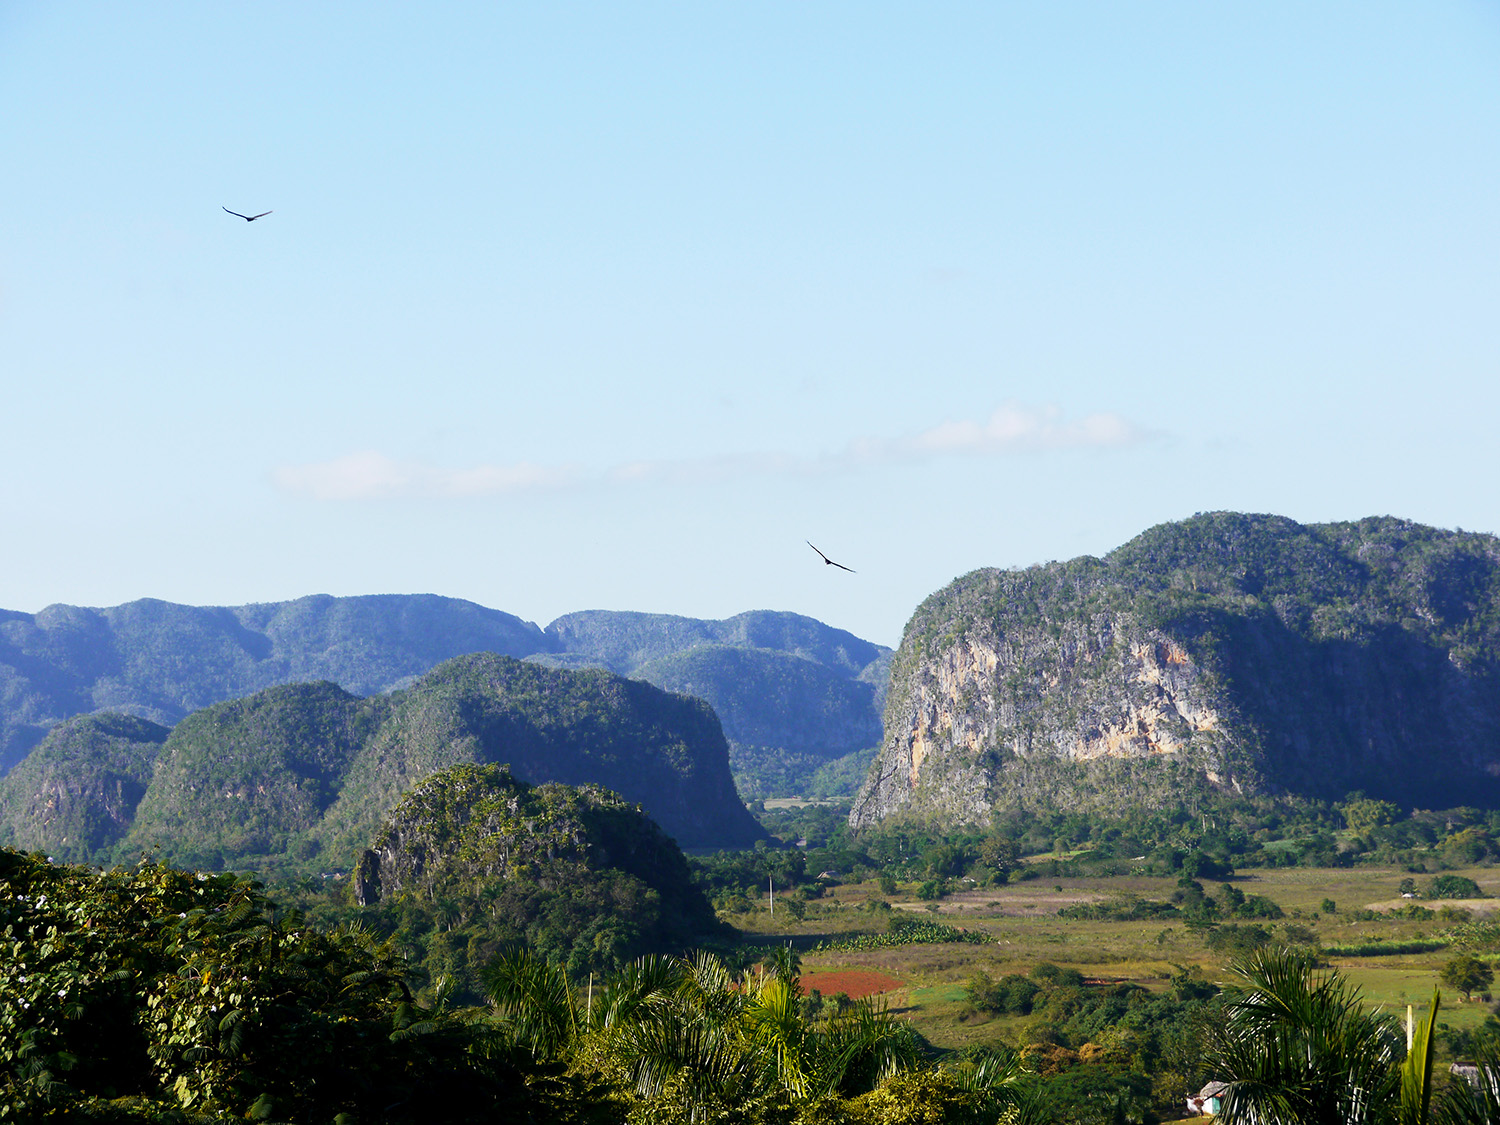 A view of the valley with birds flying.